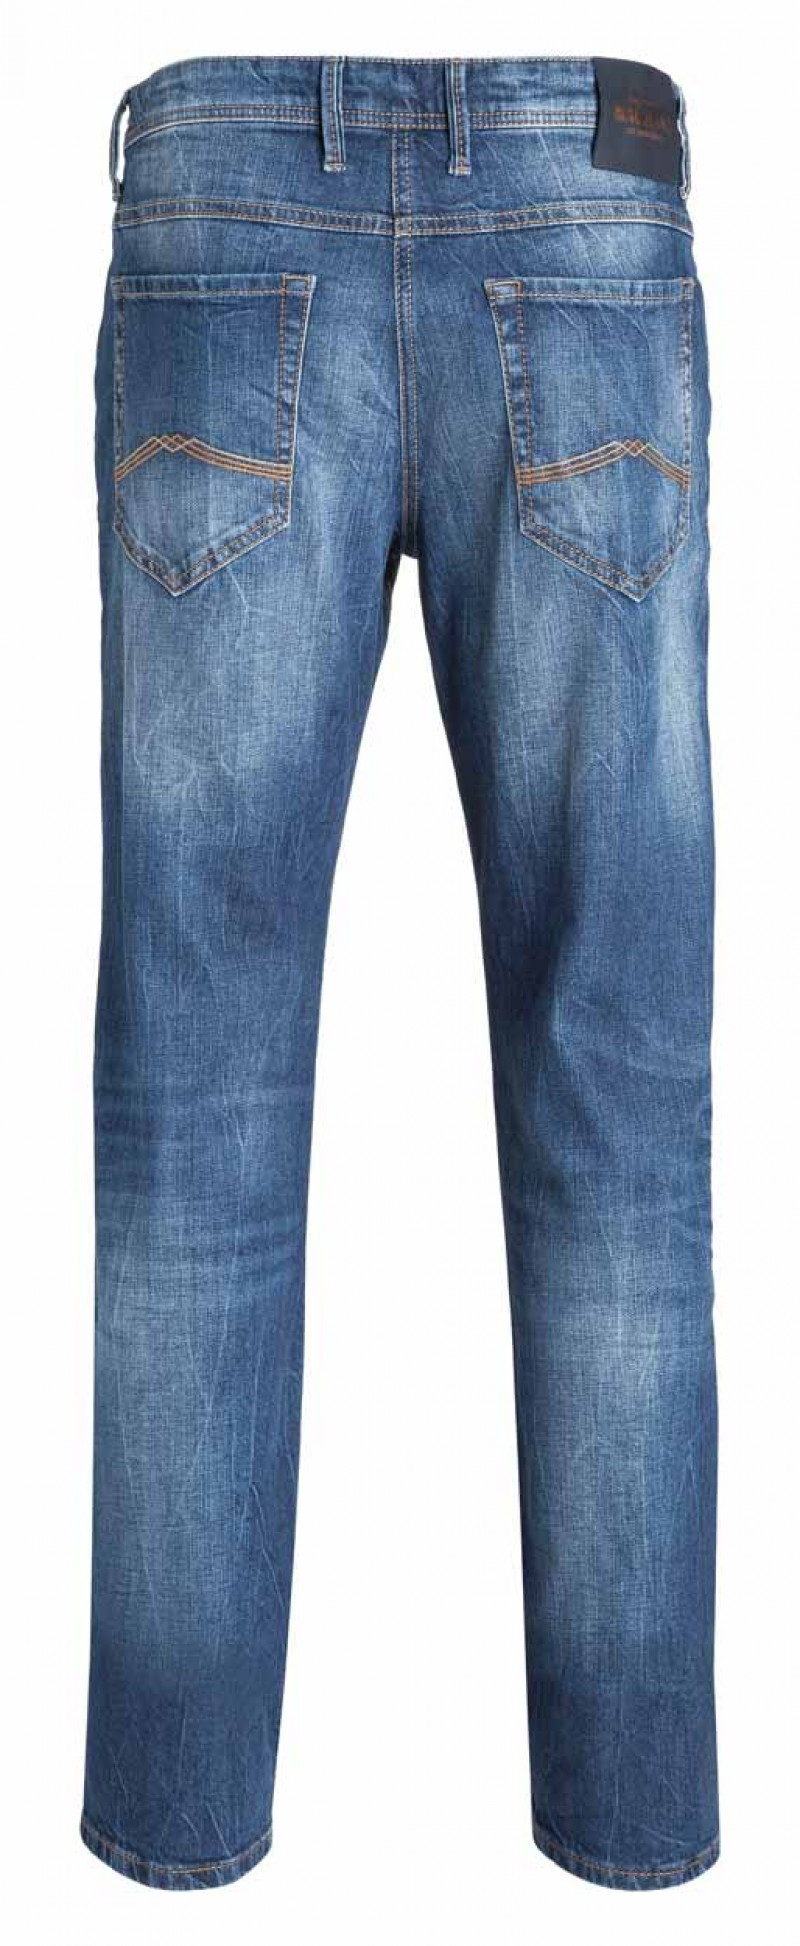 Mac Ben Jeans - Regular Fit - Dark Indigo Heavy Wash